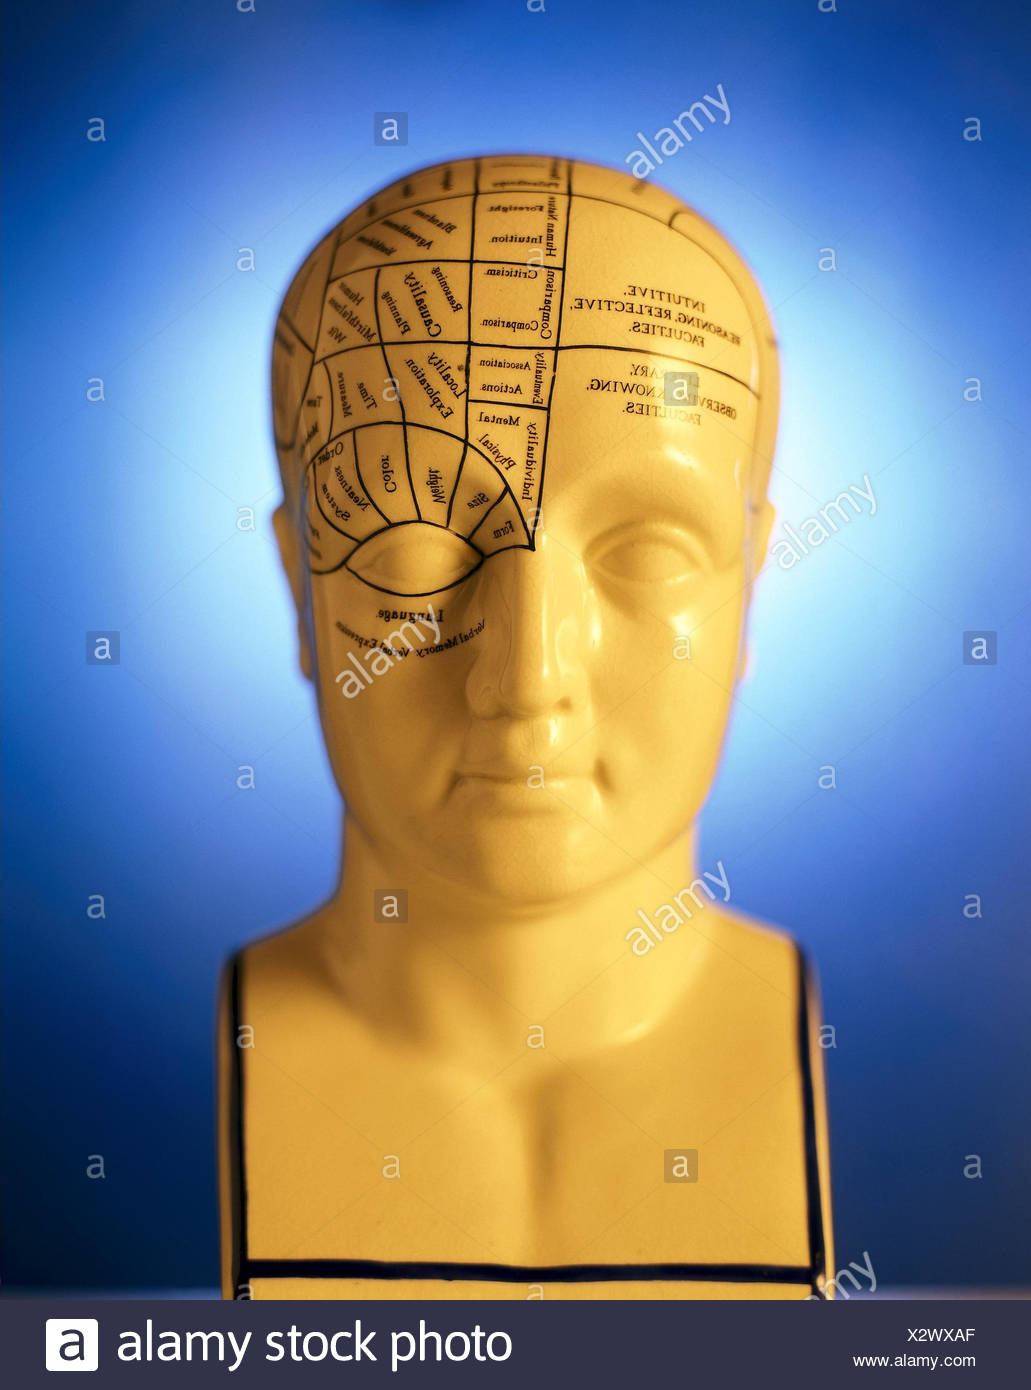 Medicine, model head, marks, brain functions medicine, science, head, model, show model, teaching model, head model, representation, division, functions, brain capacity, brain, ranges, brain cuts, teaching material, competence, illustrative material, object photography, still life - Stock Image